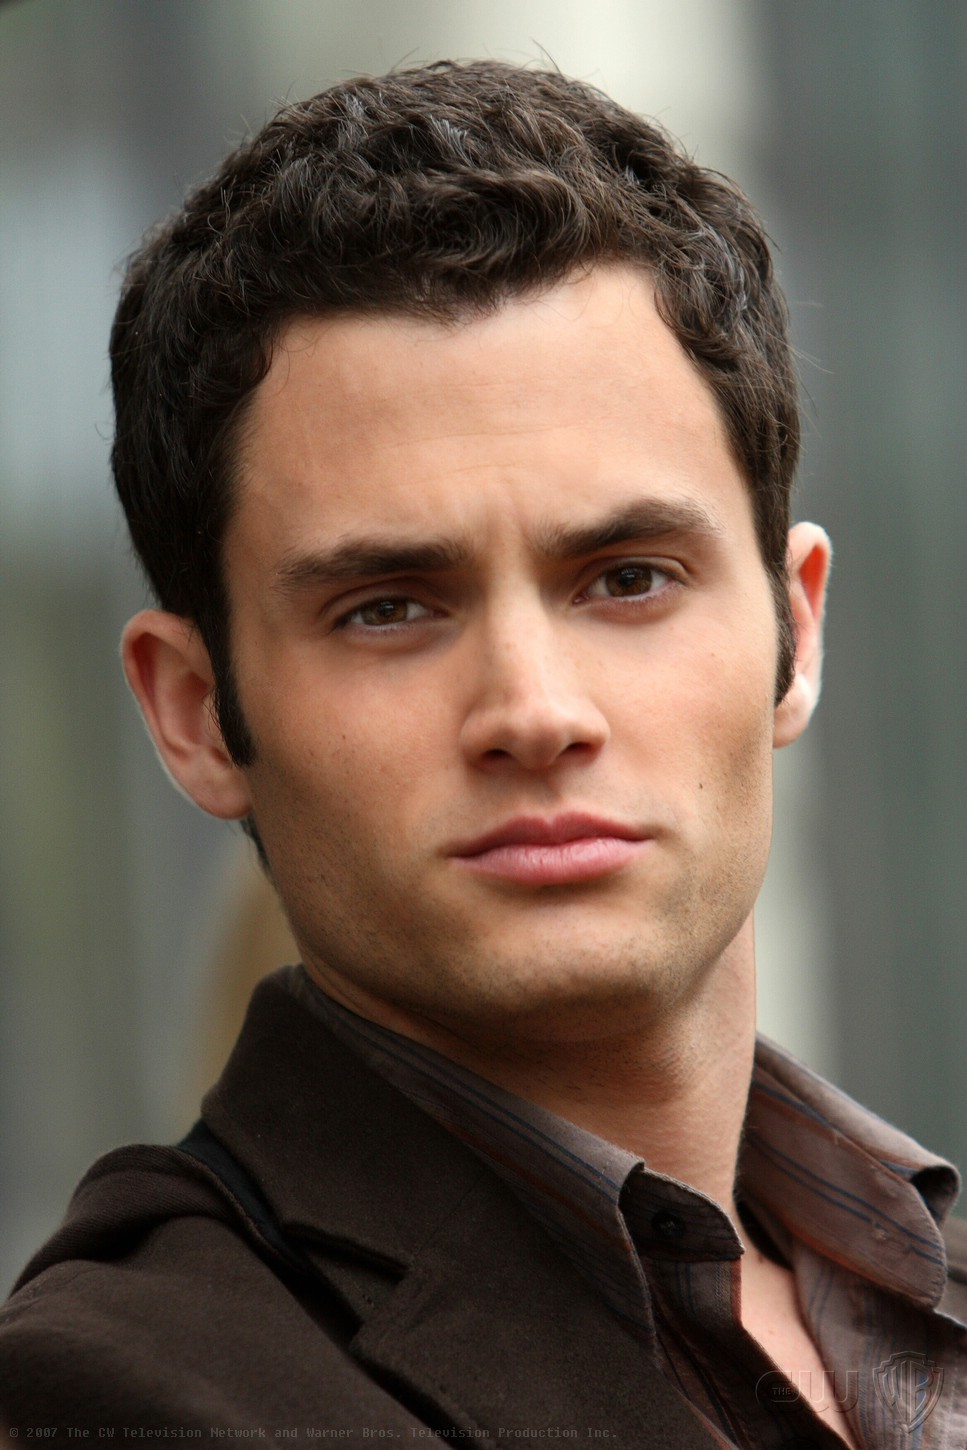 Penn Badgley Later àPpeared íN Drive Thru Playing Van Co Starring